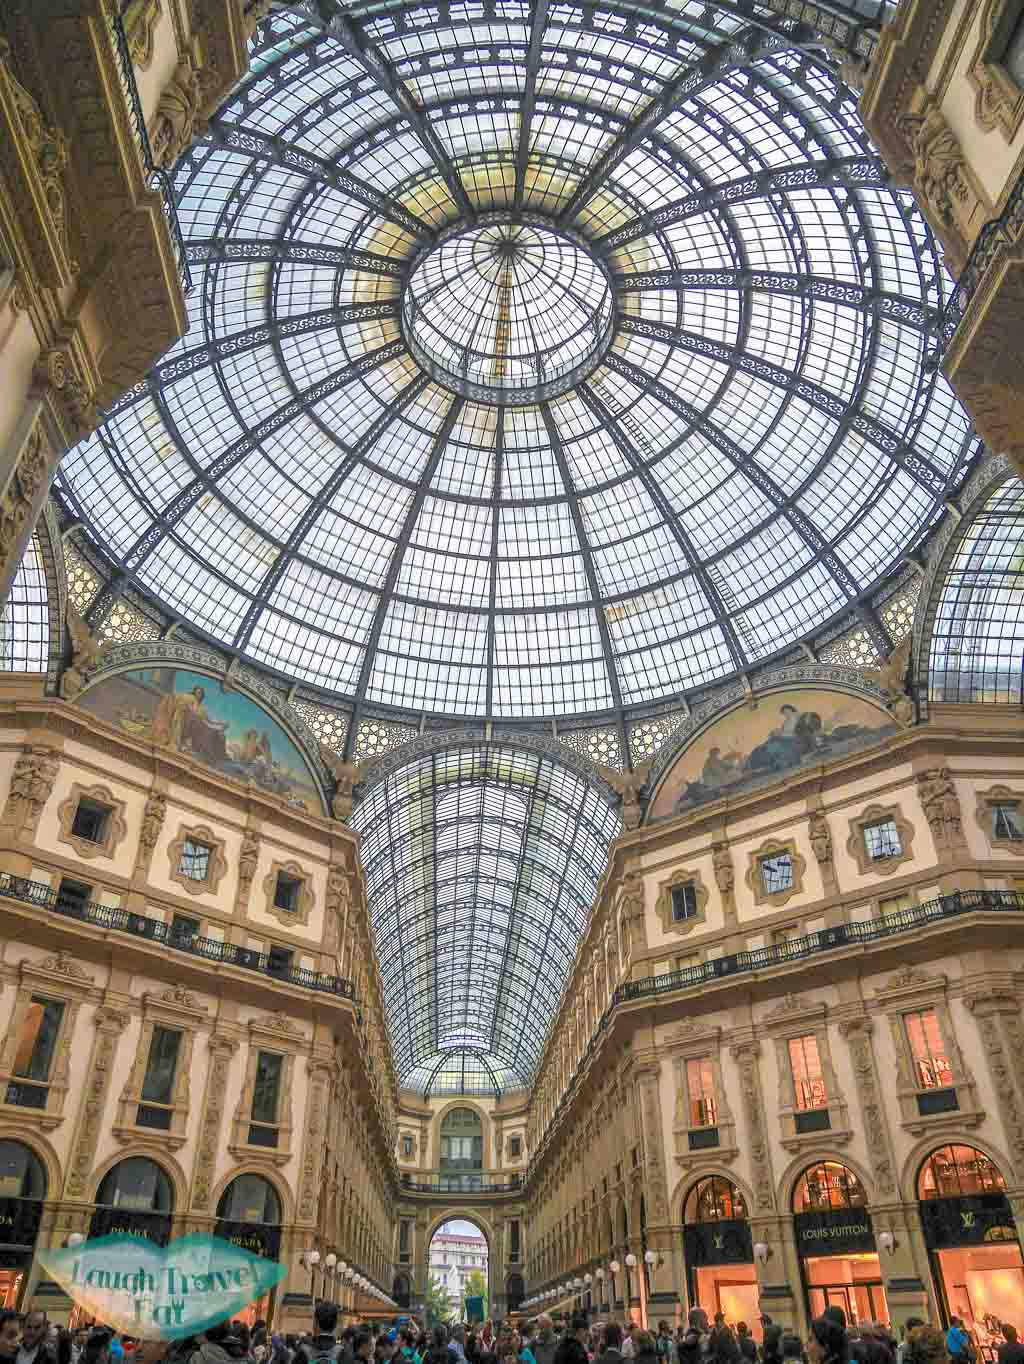 The glass and iron vault ceiling!, Galleria Vittorio Emanuele II, Milan, Italy - Laugh travel eat